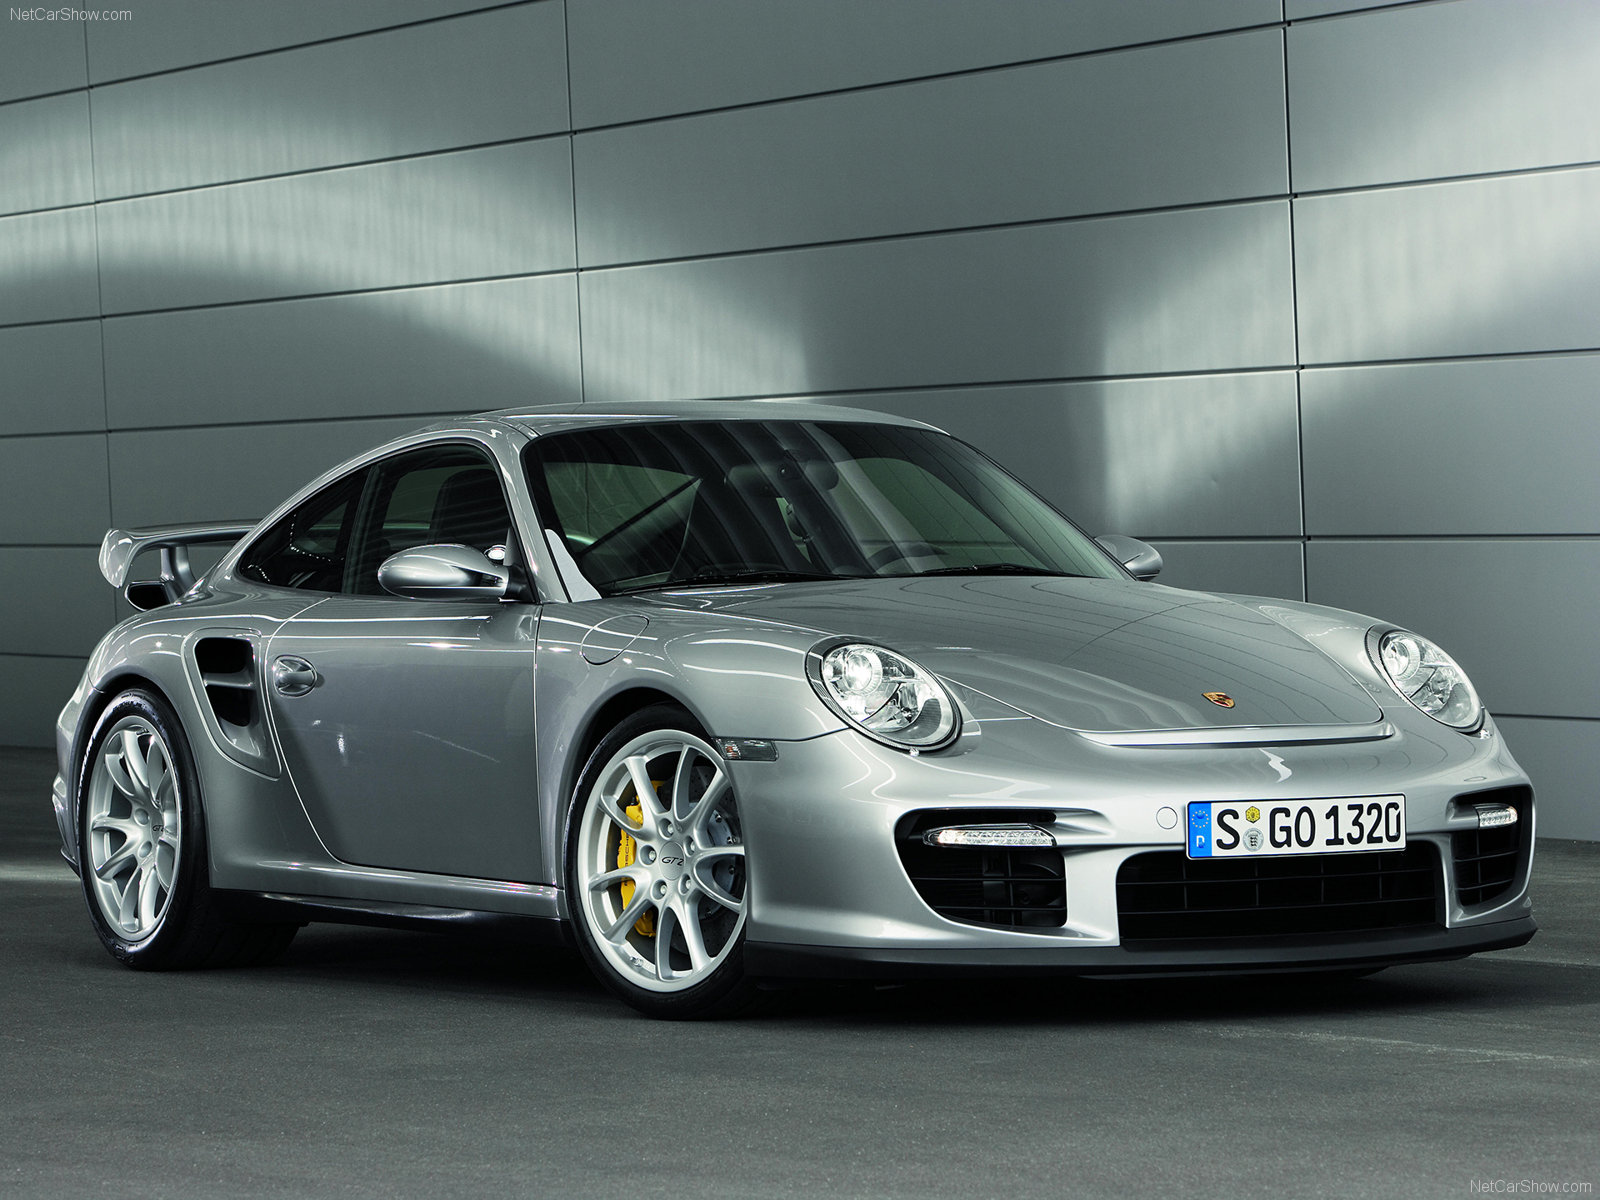 2008 Silver Porsche 911 Gt2 Wallpapers